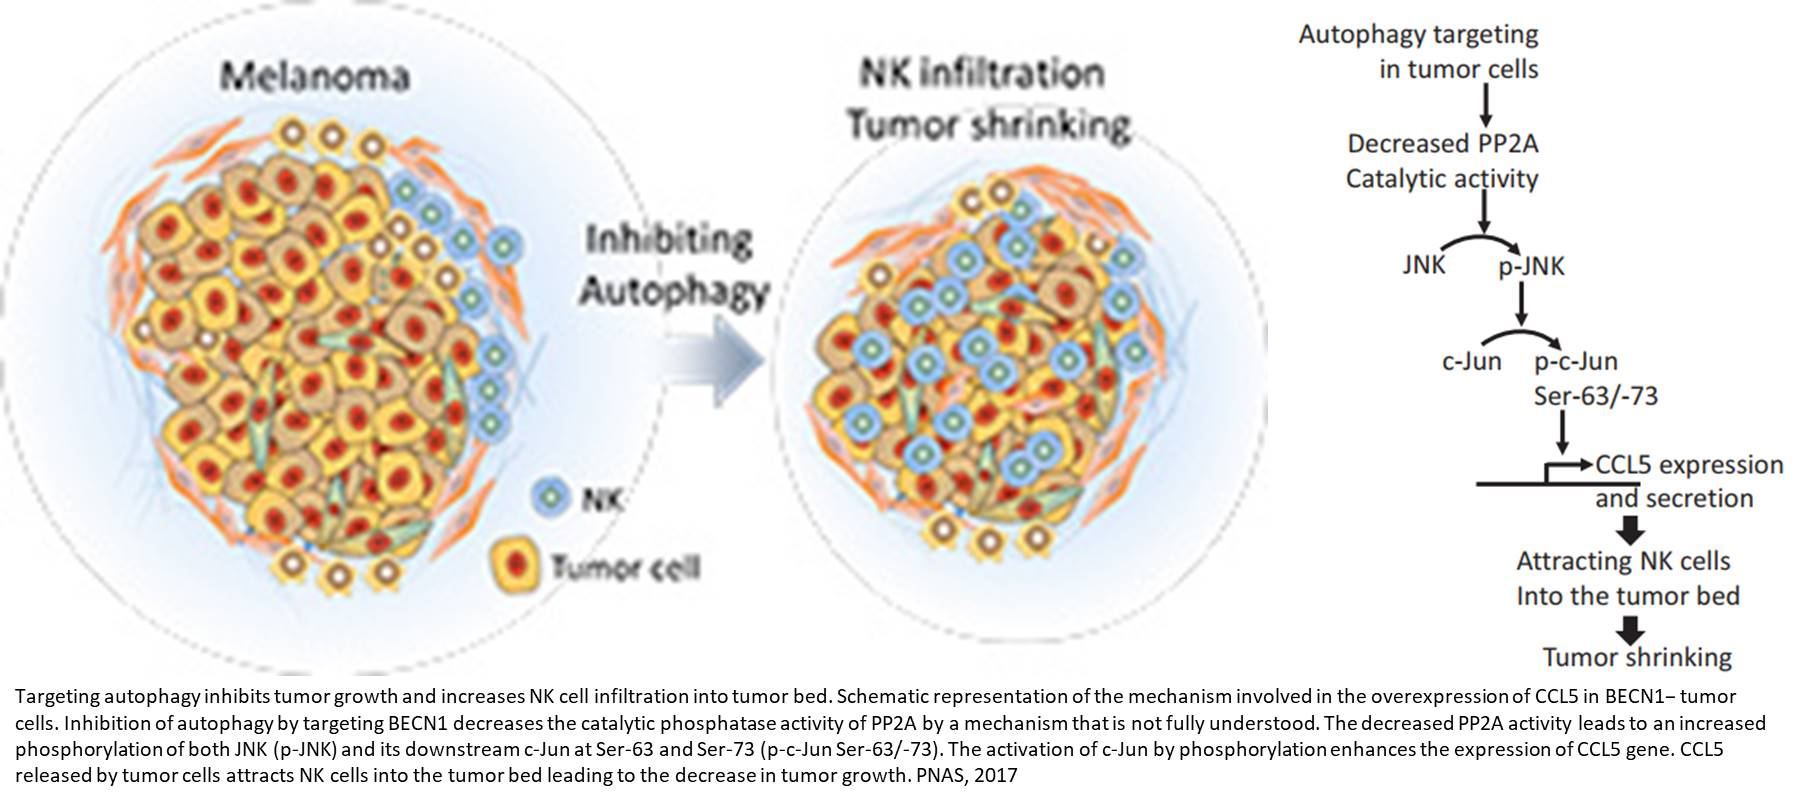 Targeting autophagy to block cancer growth!